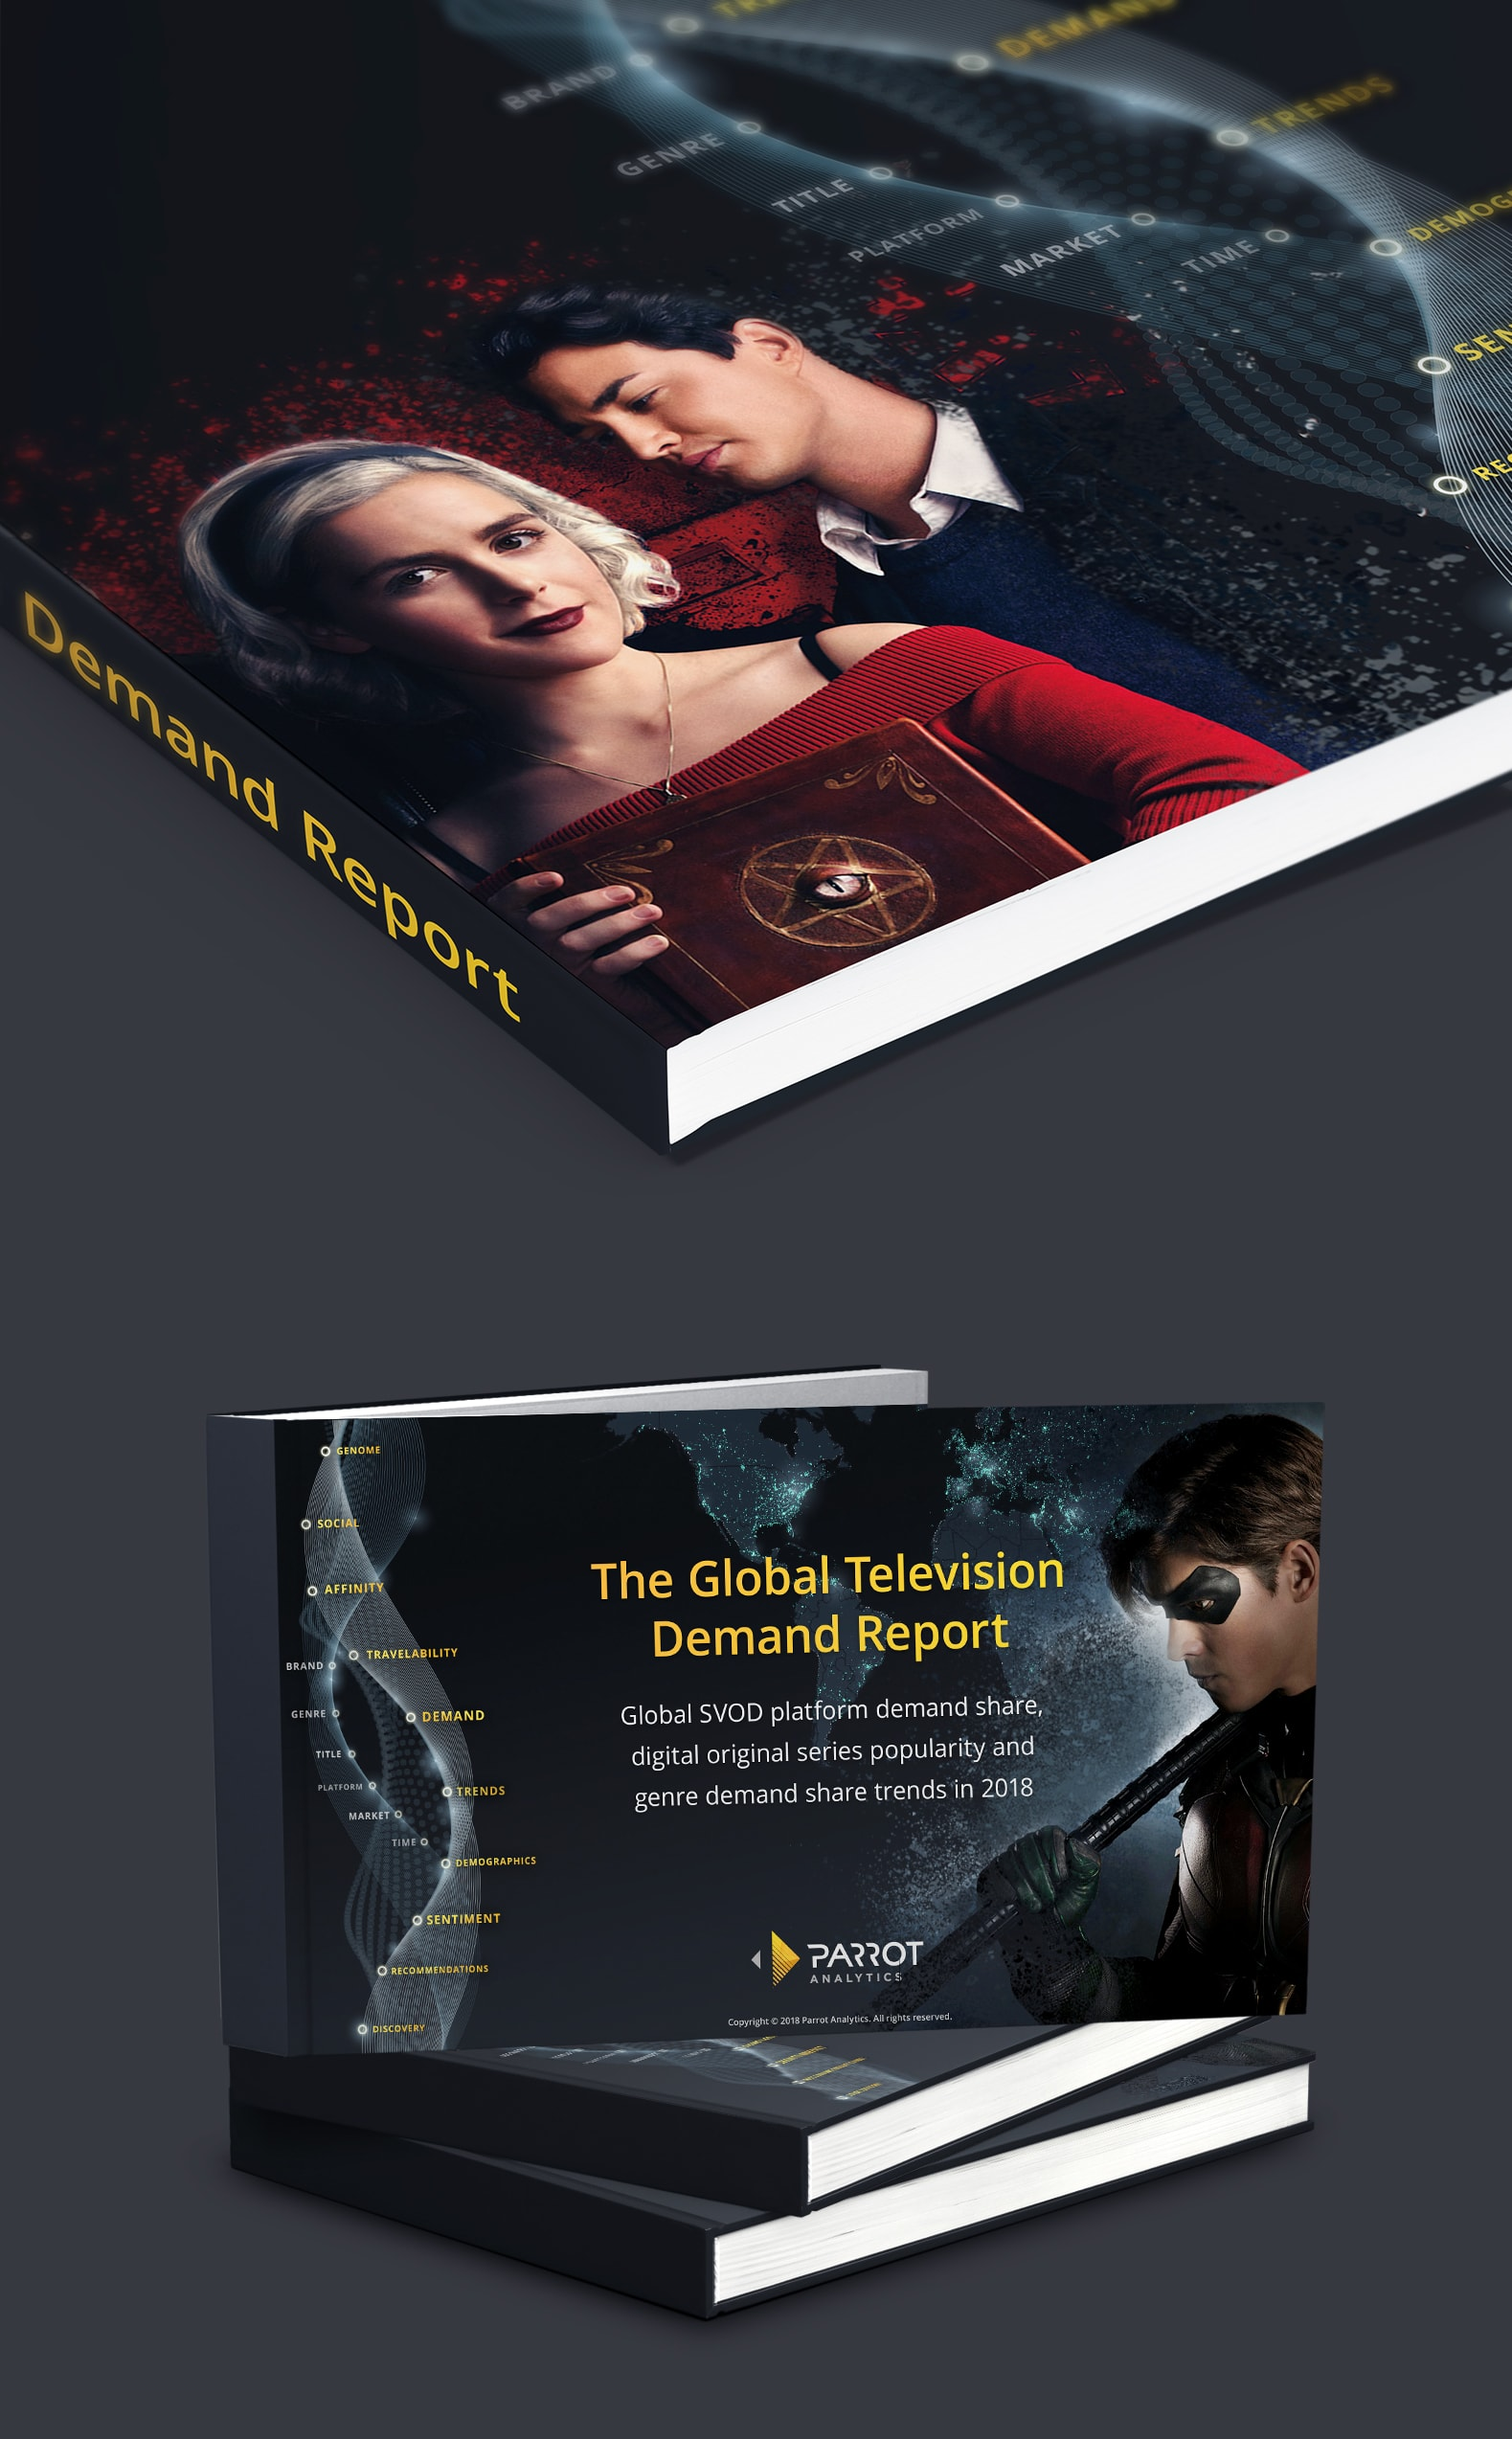 The Global Television Demand Report: Full Year 2018